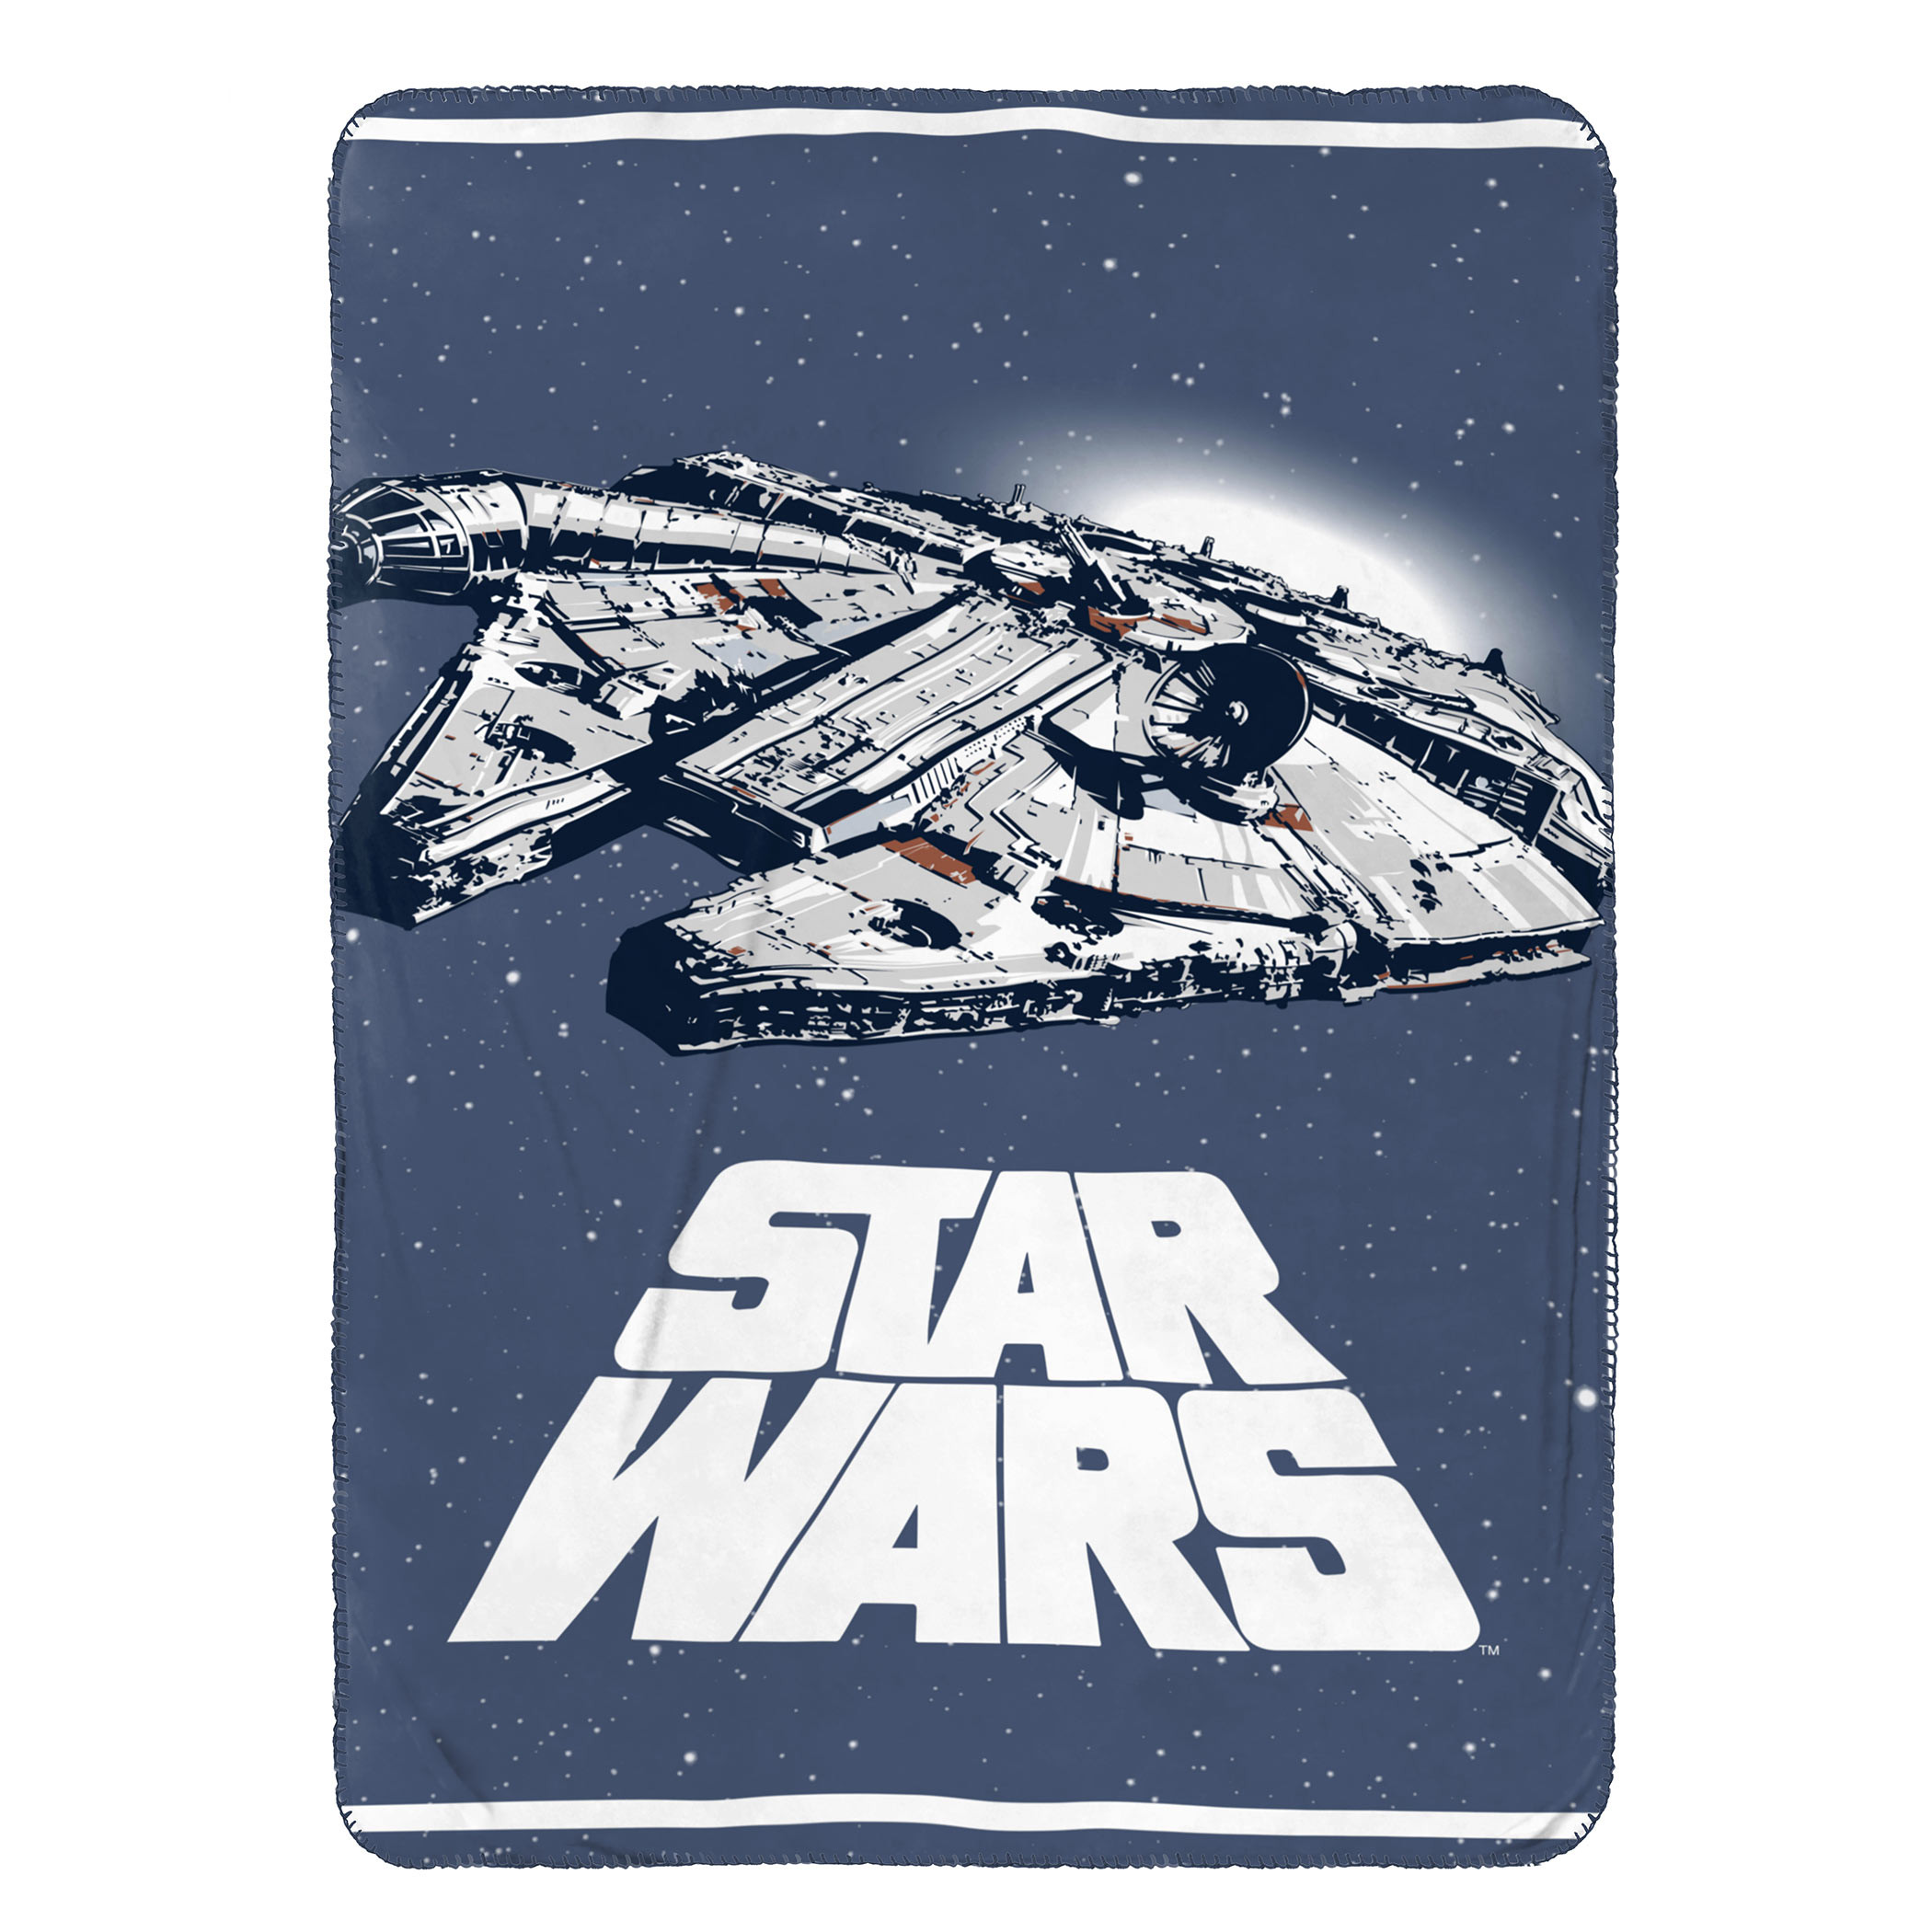 Star Wars Millennium Falcon Throw Blanket